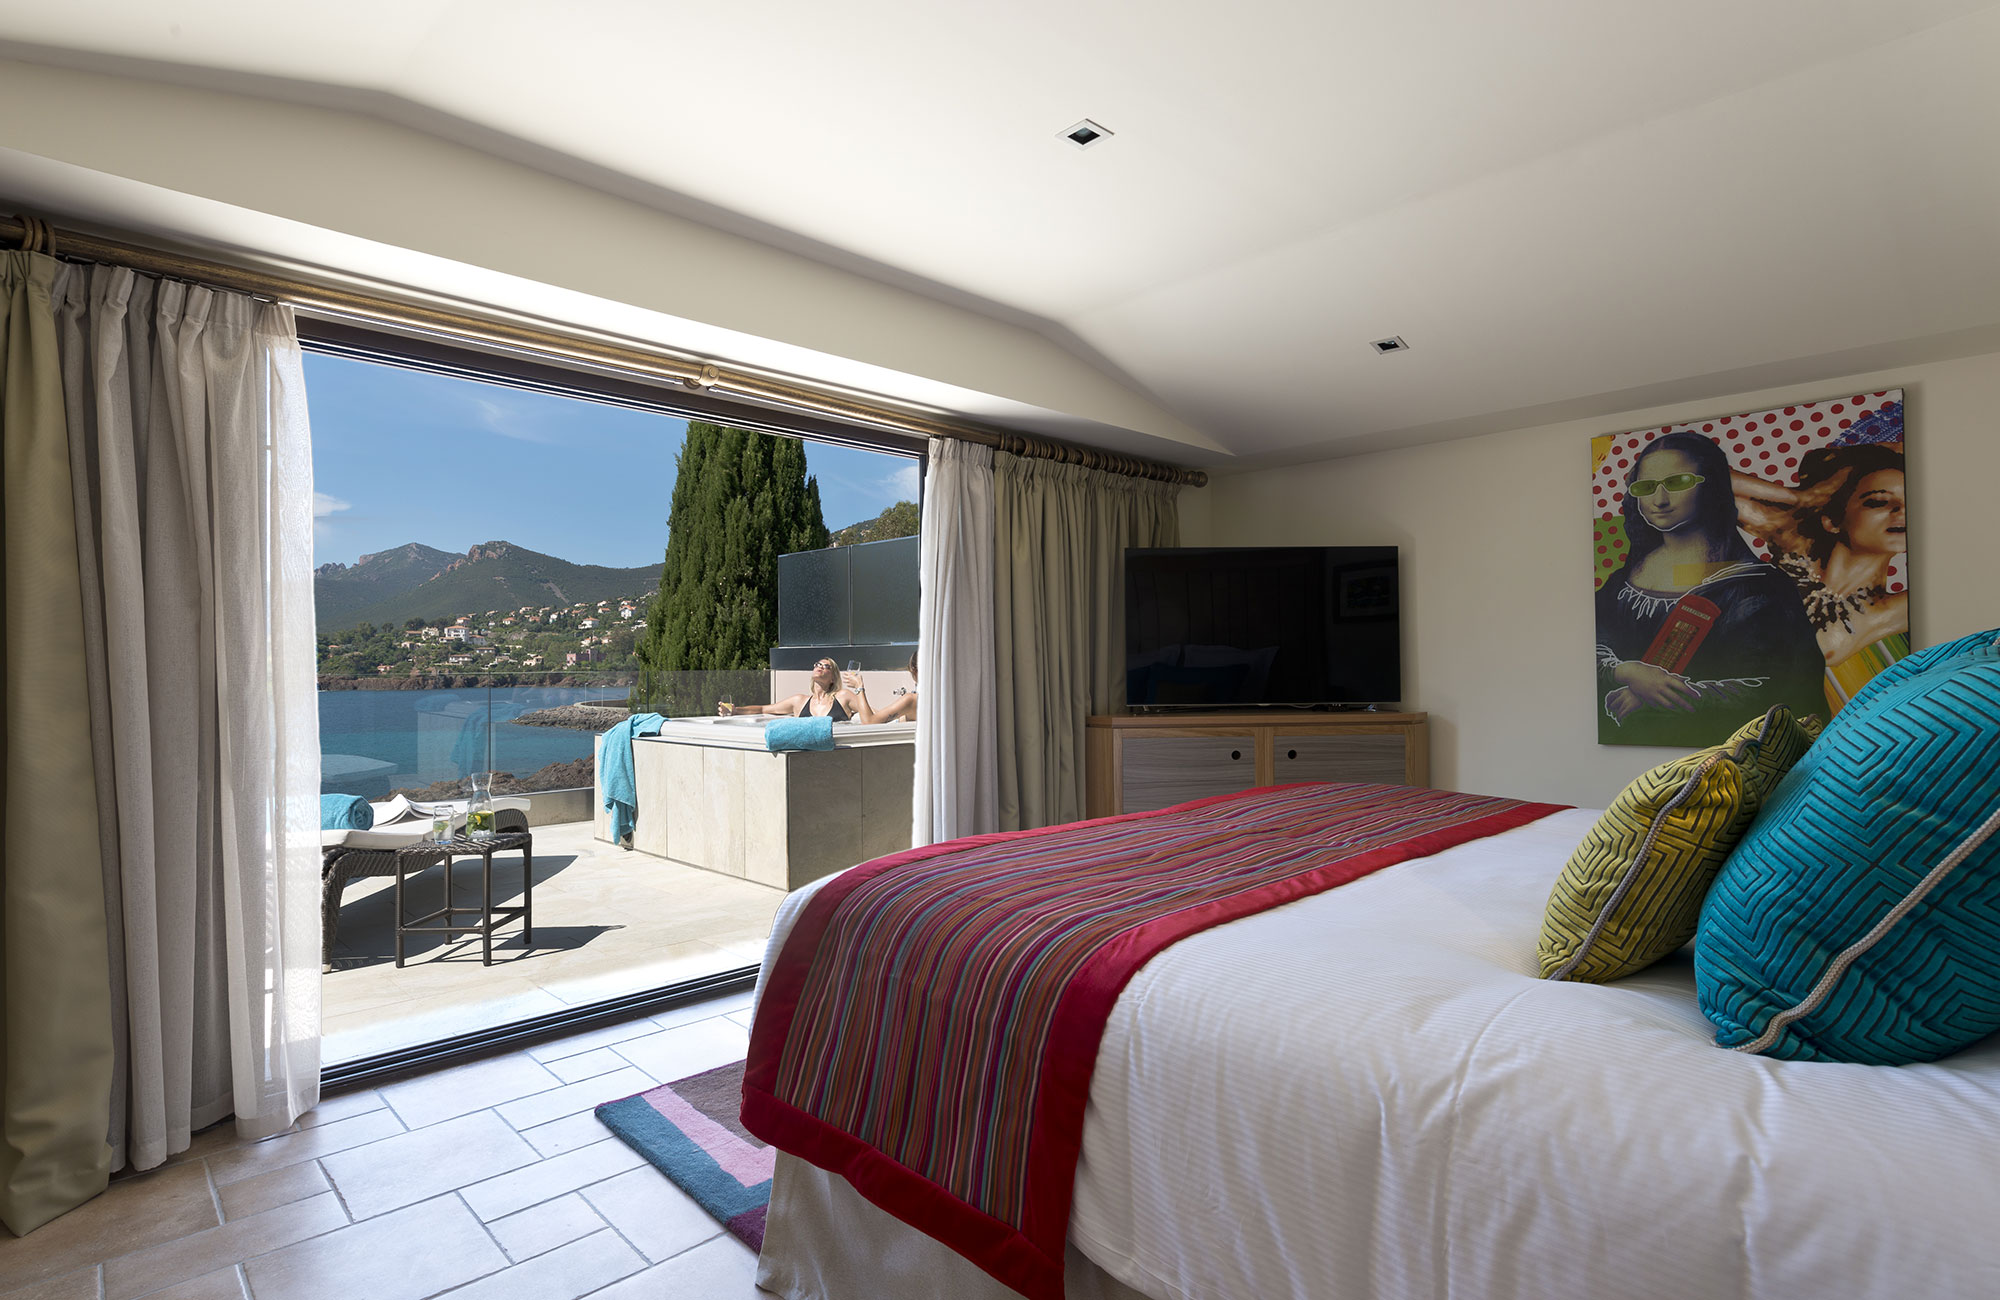 Miramar Beach Hotel & Spa - Villa Azur - Bed